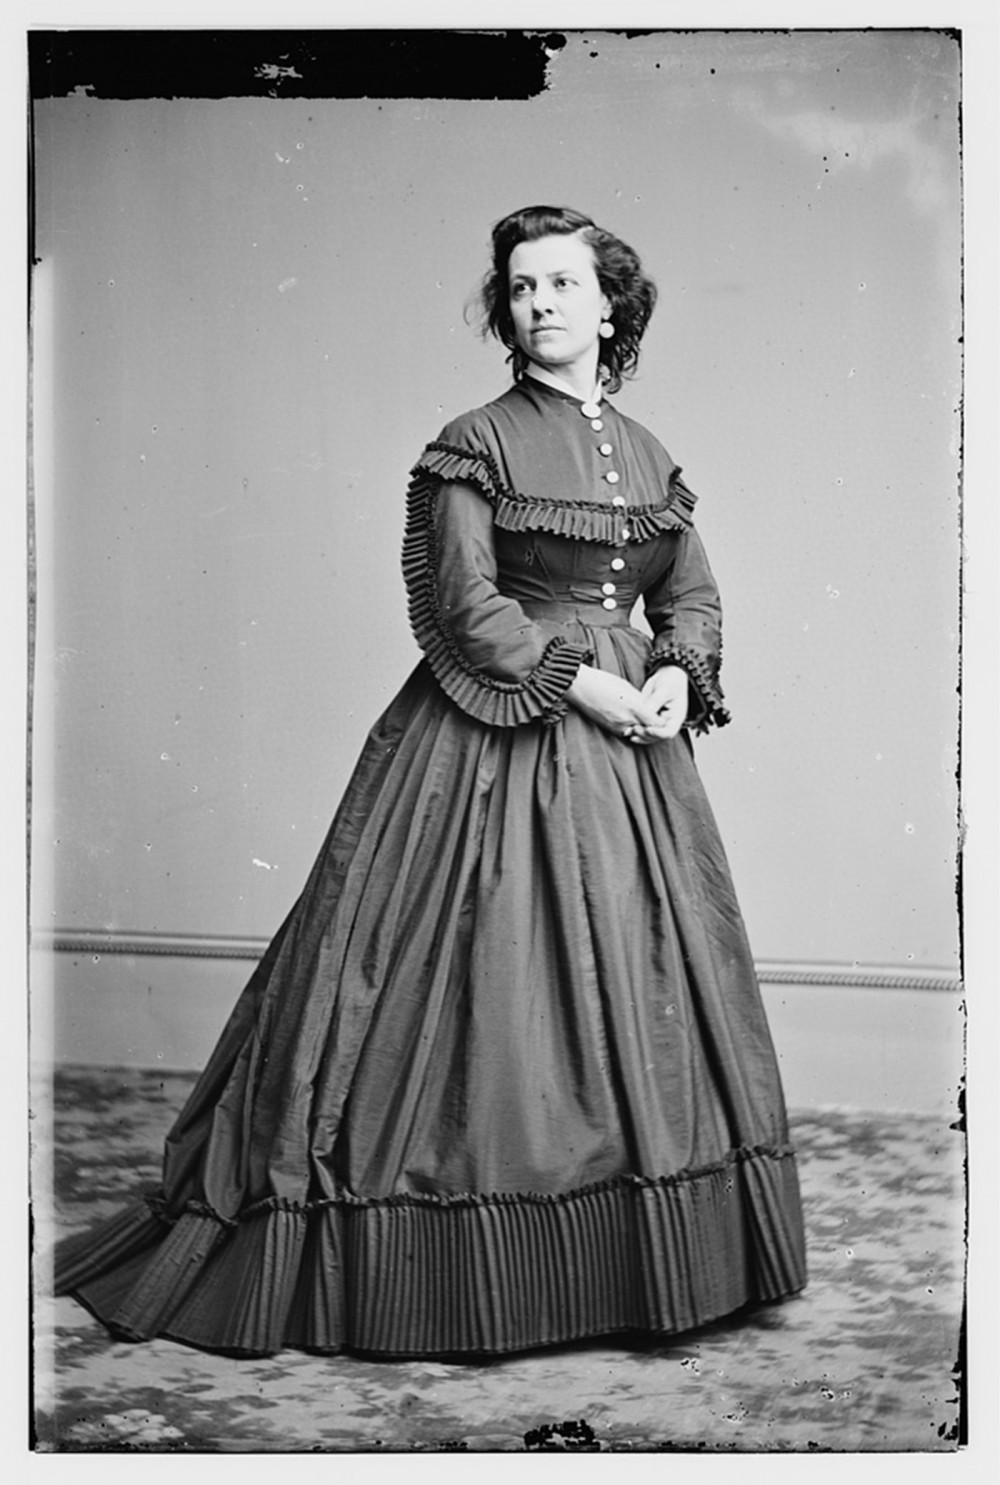 """Pauline Cushman was an American actress, a perfect occupation for a wartime spy. Using her guile to fraternize with Confederate officers, Cushman she snuck military plans and drawings to Union officials in her shoes. She was caught, tried, and sentenced to death, but was apparently saved days before her execution by the occupation of her native New Orleans by Union forces. Women like Cushman, whether spies, nurses, or textile workers, were essential to the Union war effort. """"Pauline Cushman,"""" between 1855 and 1865. Library of Congress, http://www.loc.gov/pictures/item/brh2003003292/PP/."""